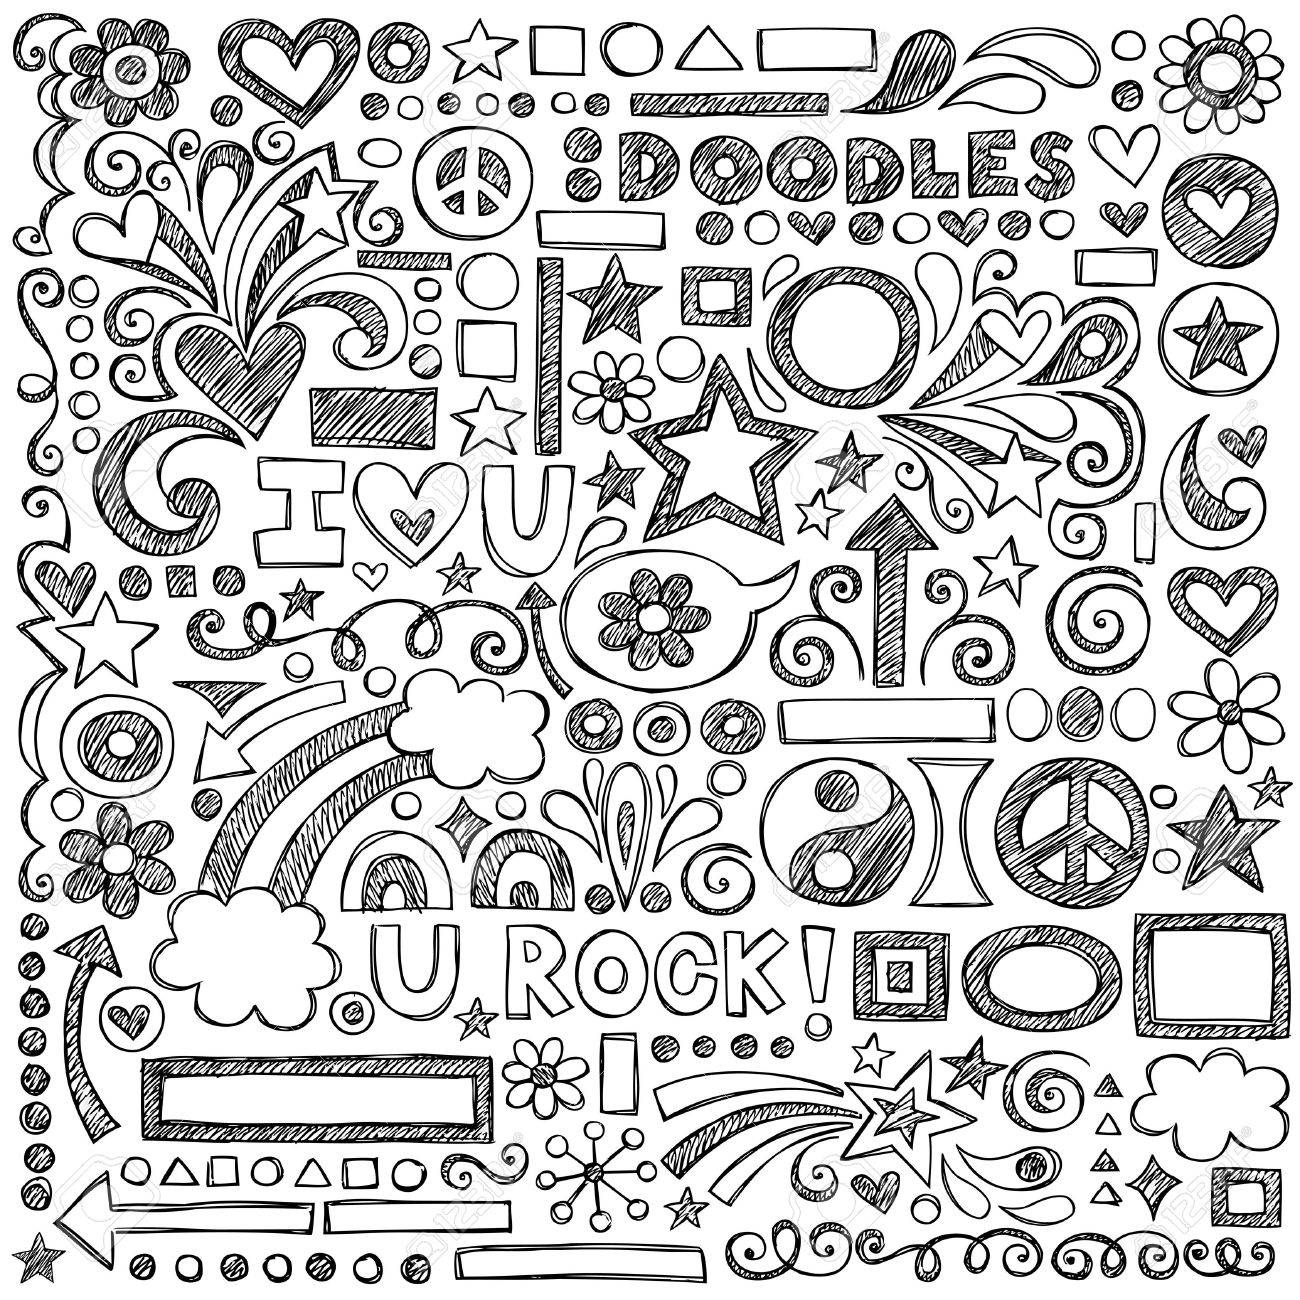 Back to School Sketchy Notebook Doodles with Flowers, Shapes, Hearts, Stars, Arrows and More Stock Vector - 15520645